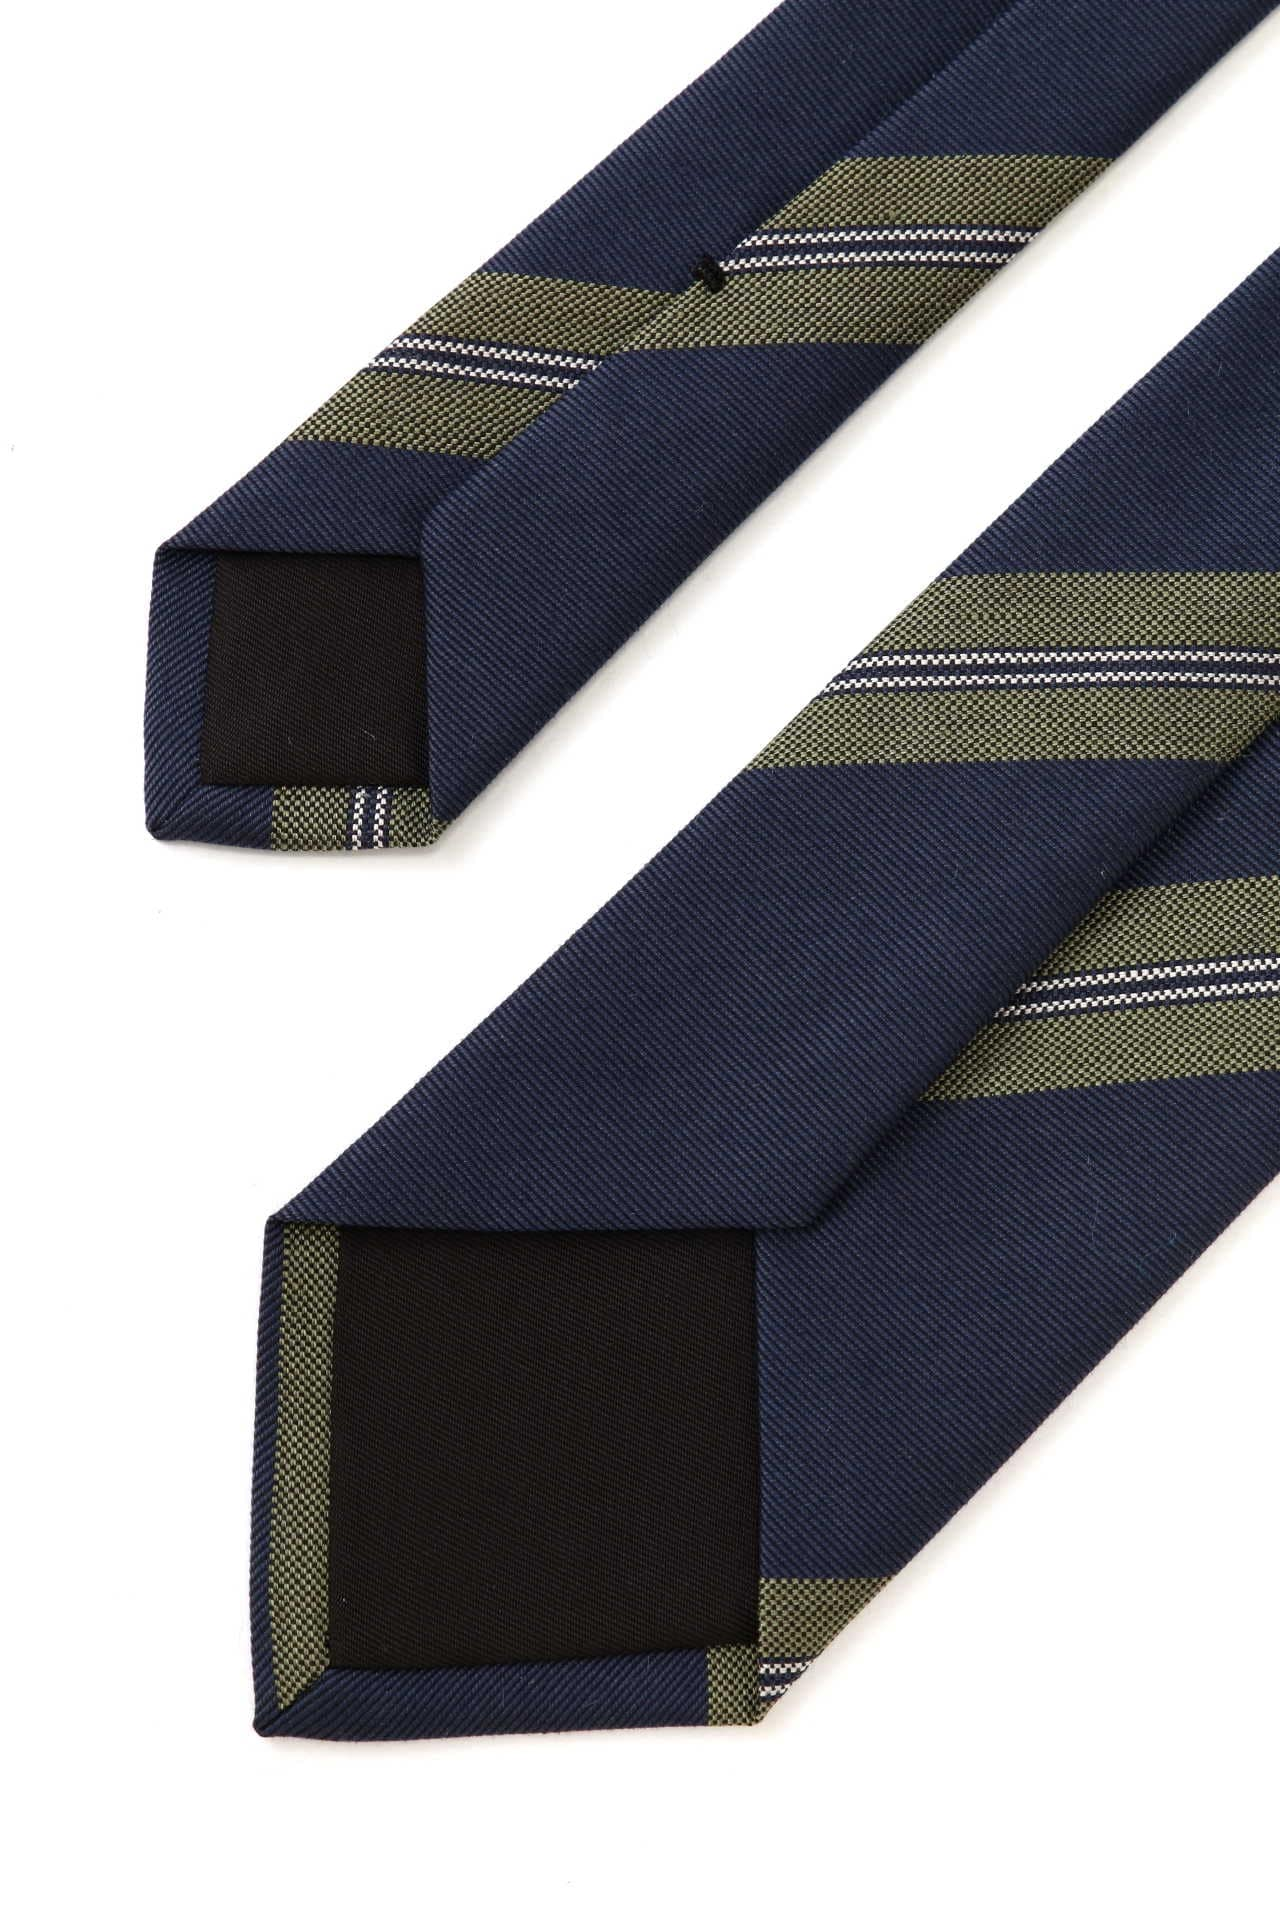 ALTERNATE STRIPE TIE5